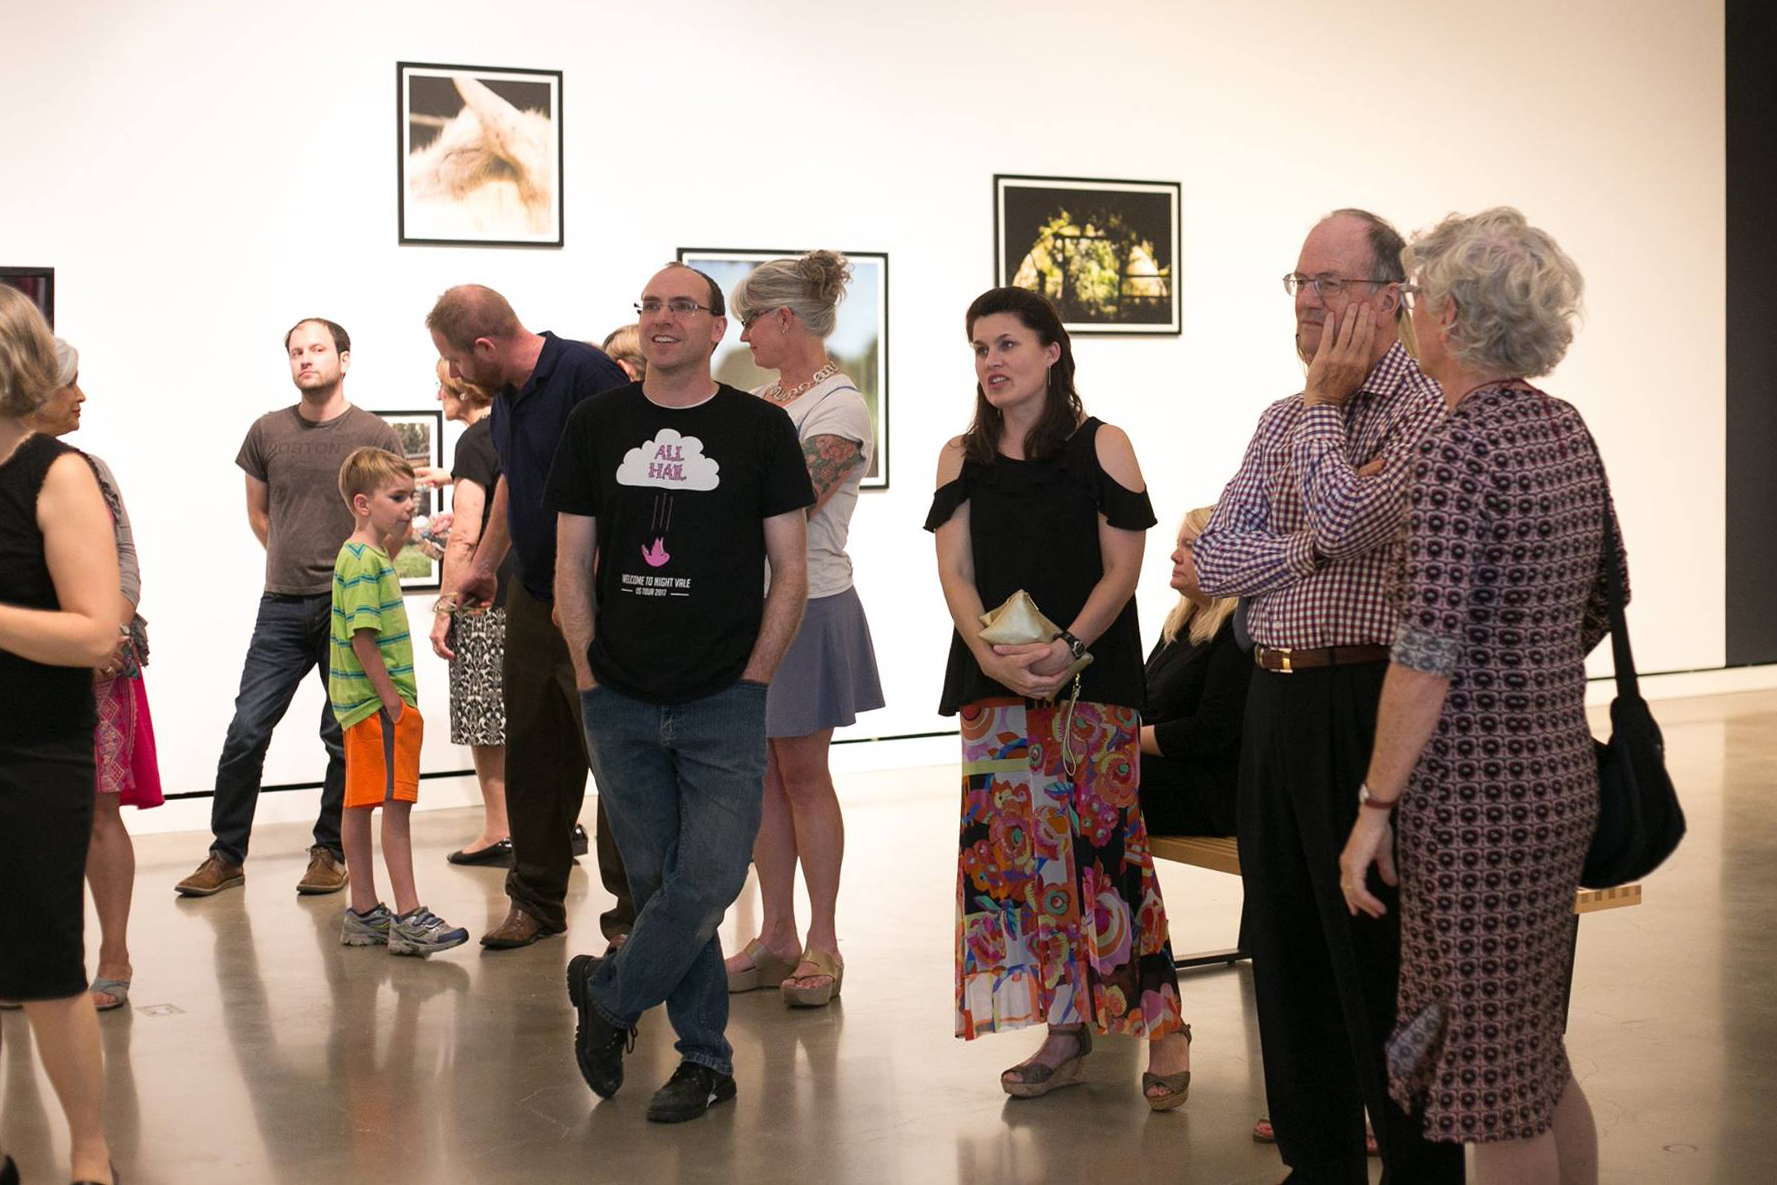 Post-Picturesque: Photographing Ireland, at the Rochester Art Center